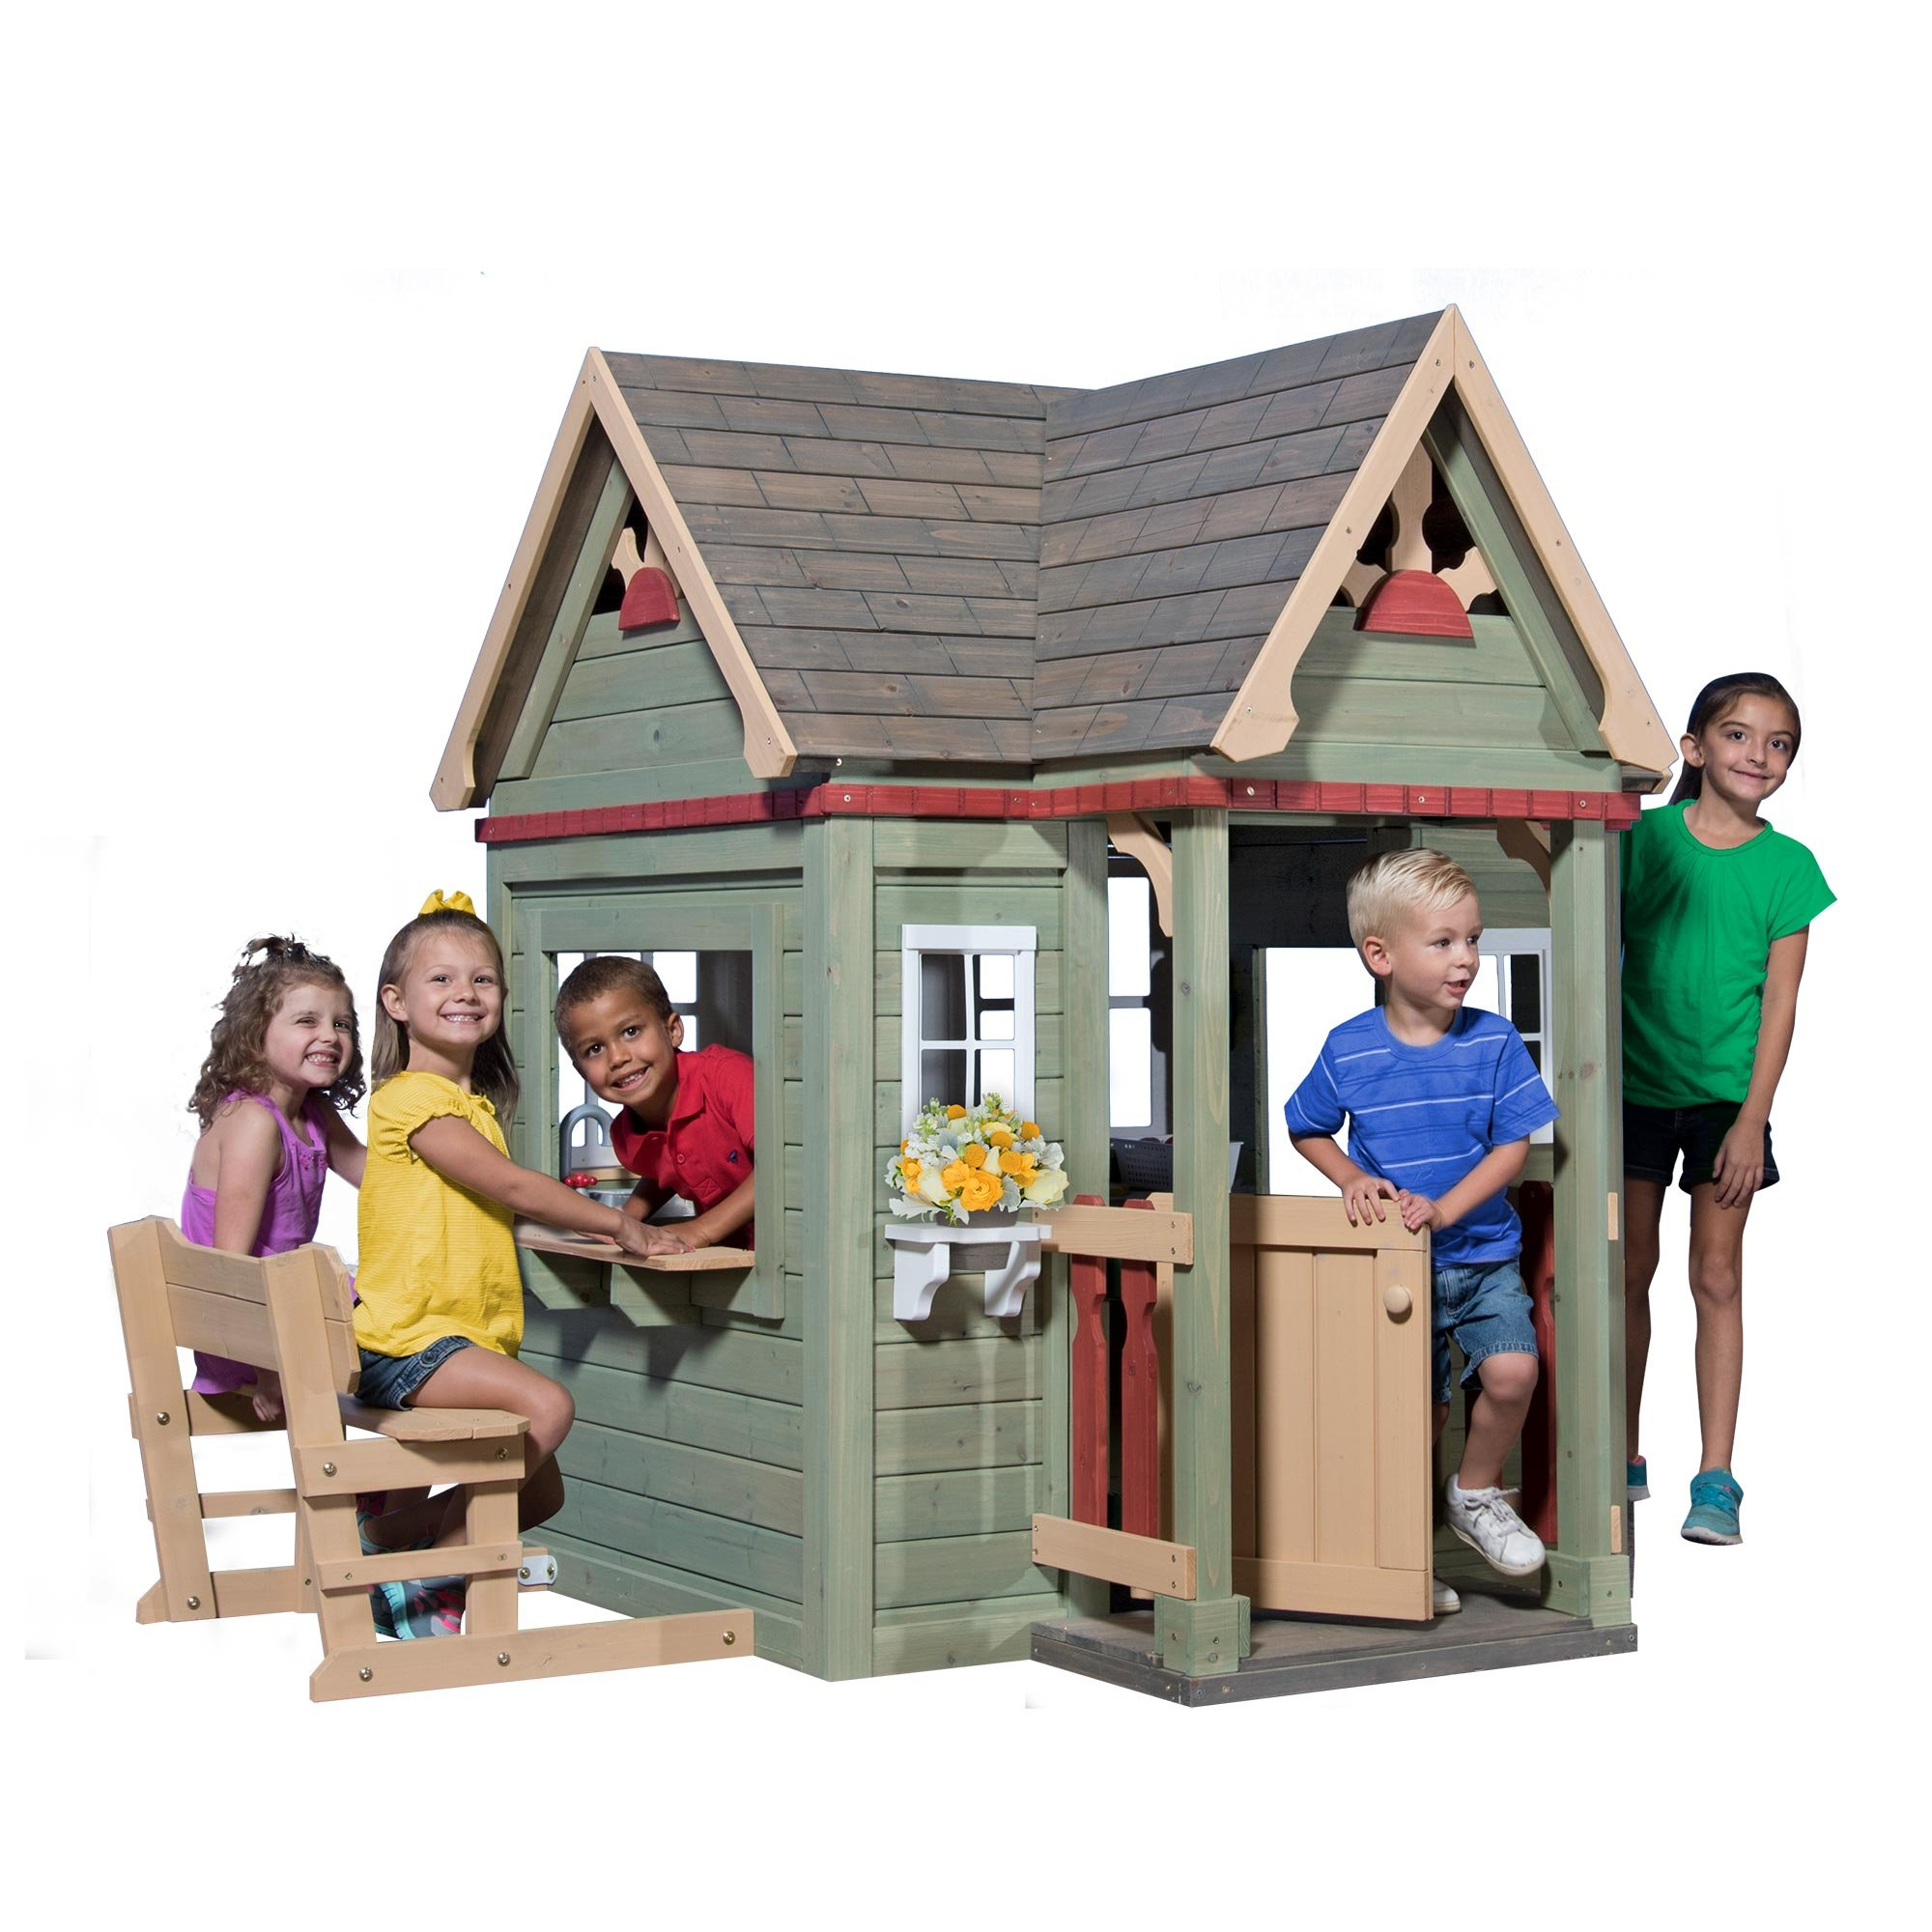 Backyard Discovery Victorian Inn All Cedar Outdoor Wooden Playhouse by Backyard Discovery (Image #1)